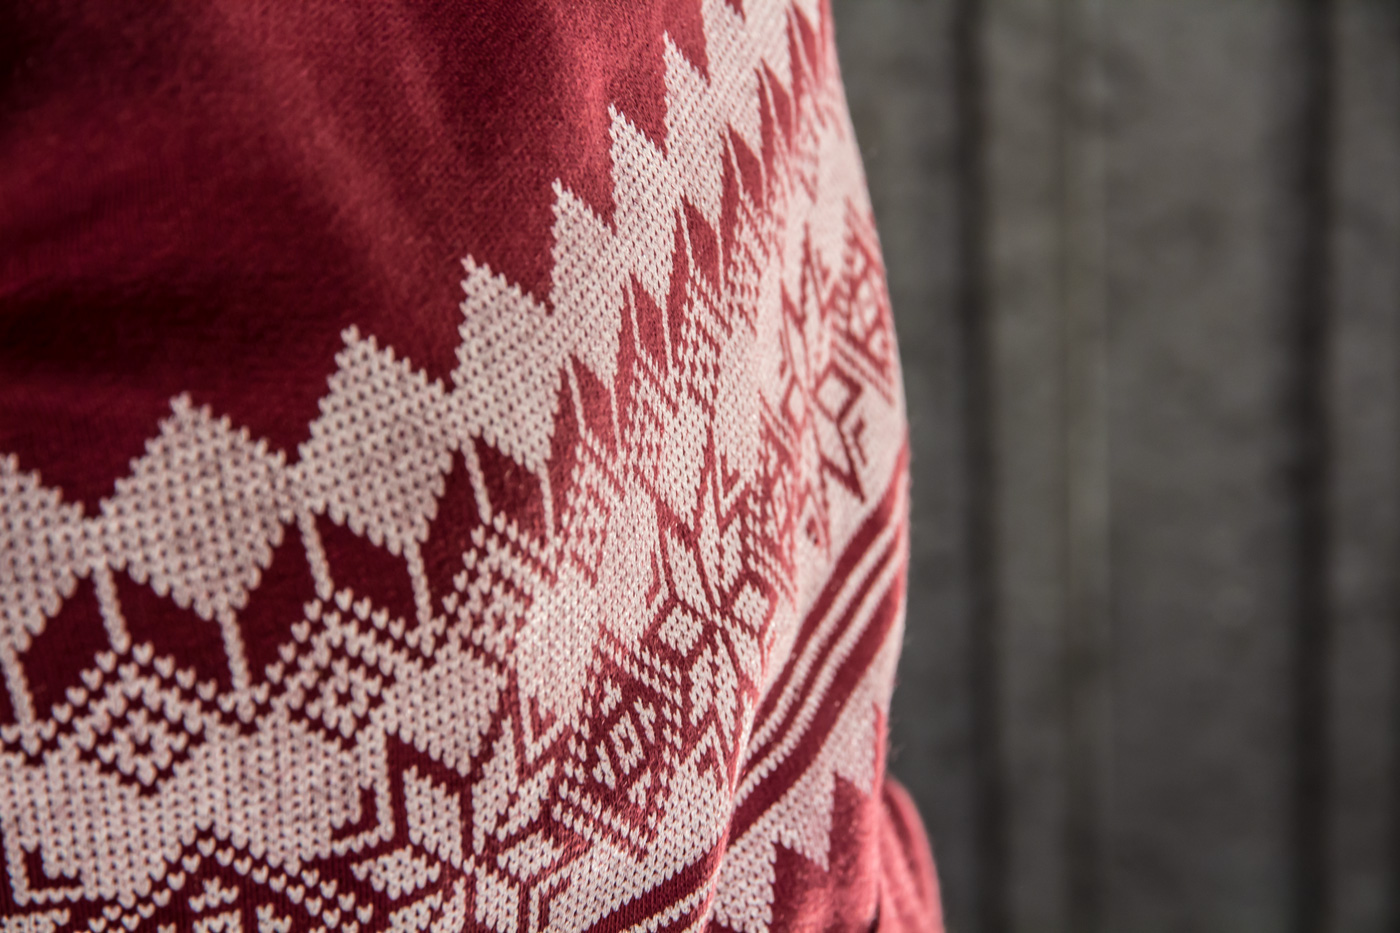 Classic hoodie, t shirt or tank top in christmas style for your winter with embroidery silkscreen print effect